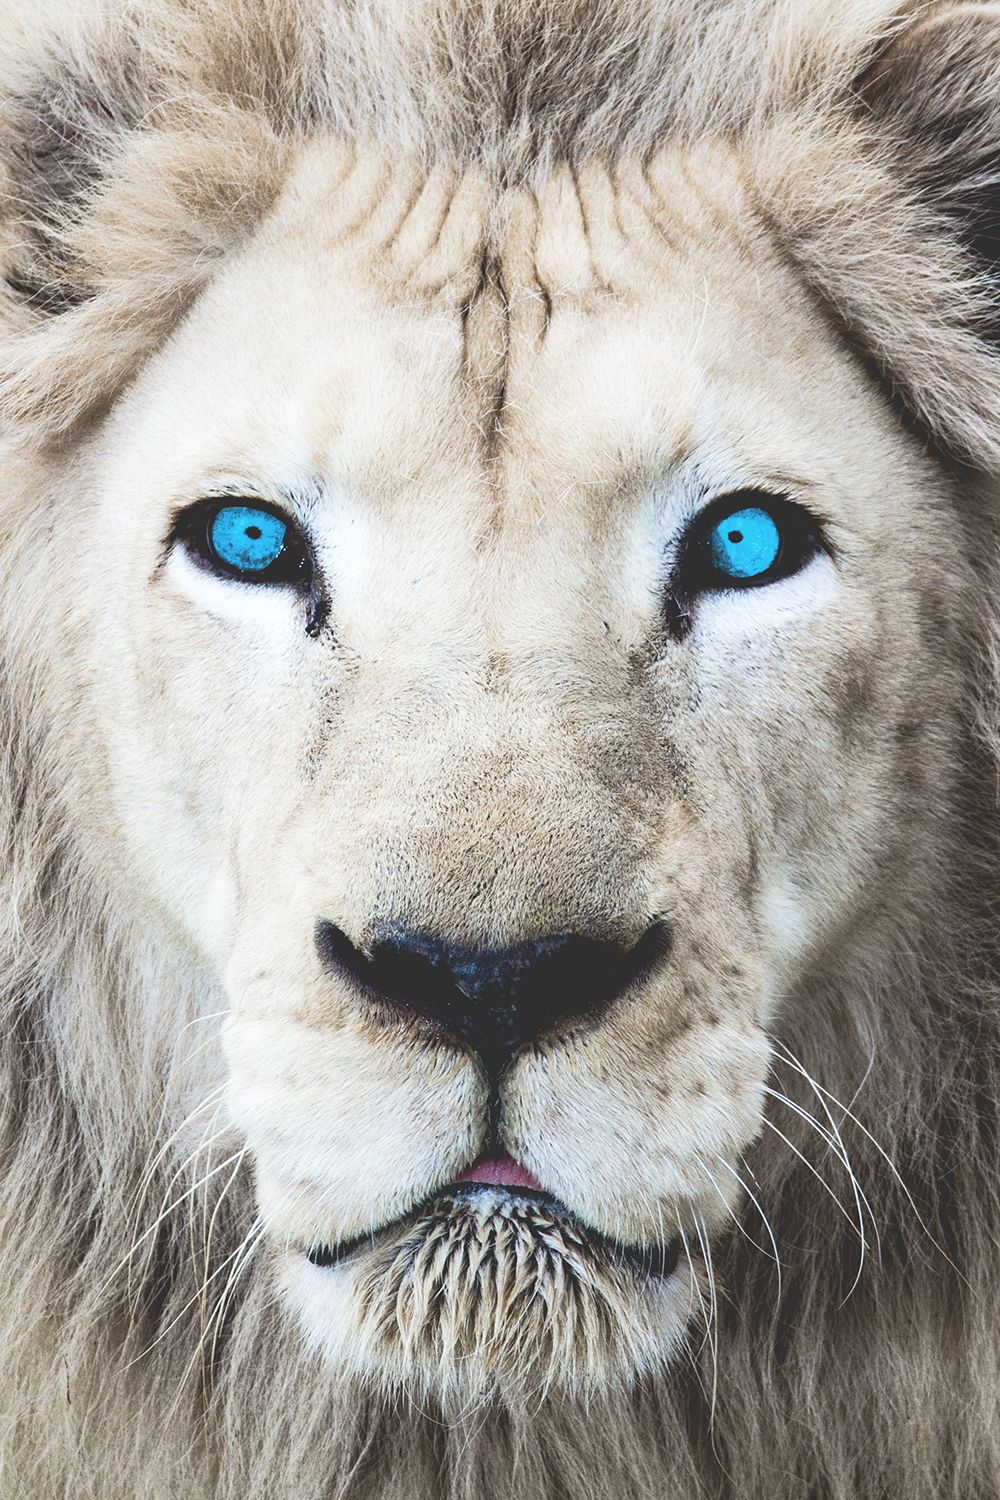 Superior Luxury Motivationsforlife Eyes Wide Open White Lion